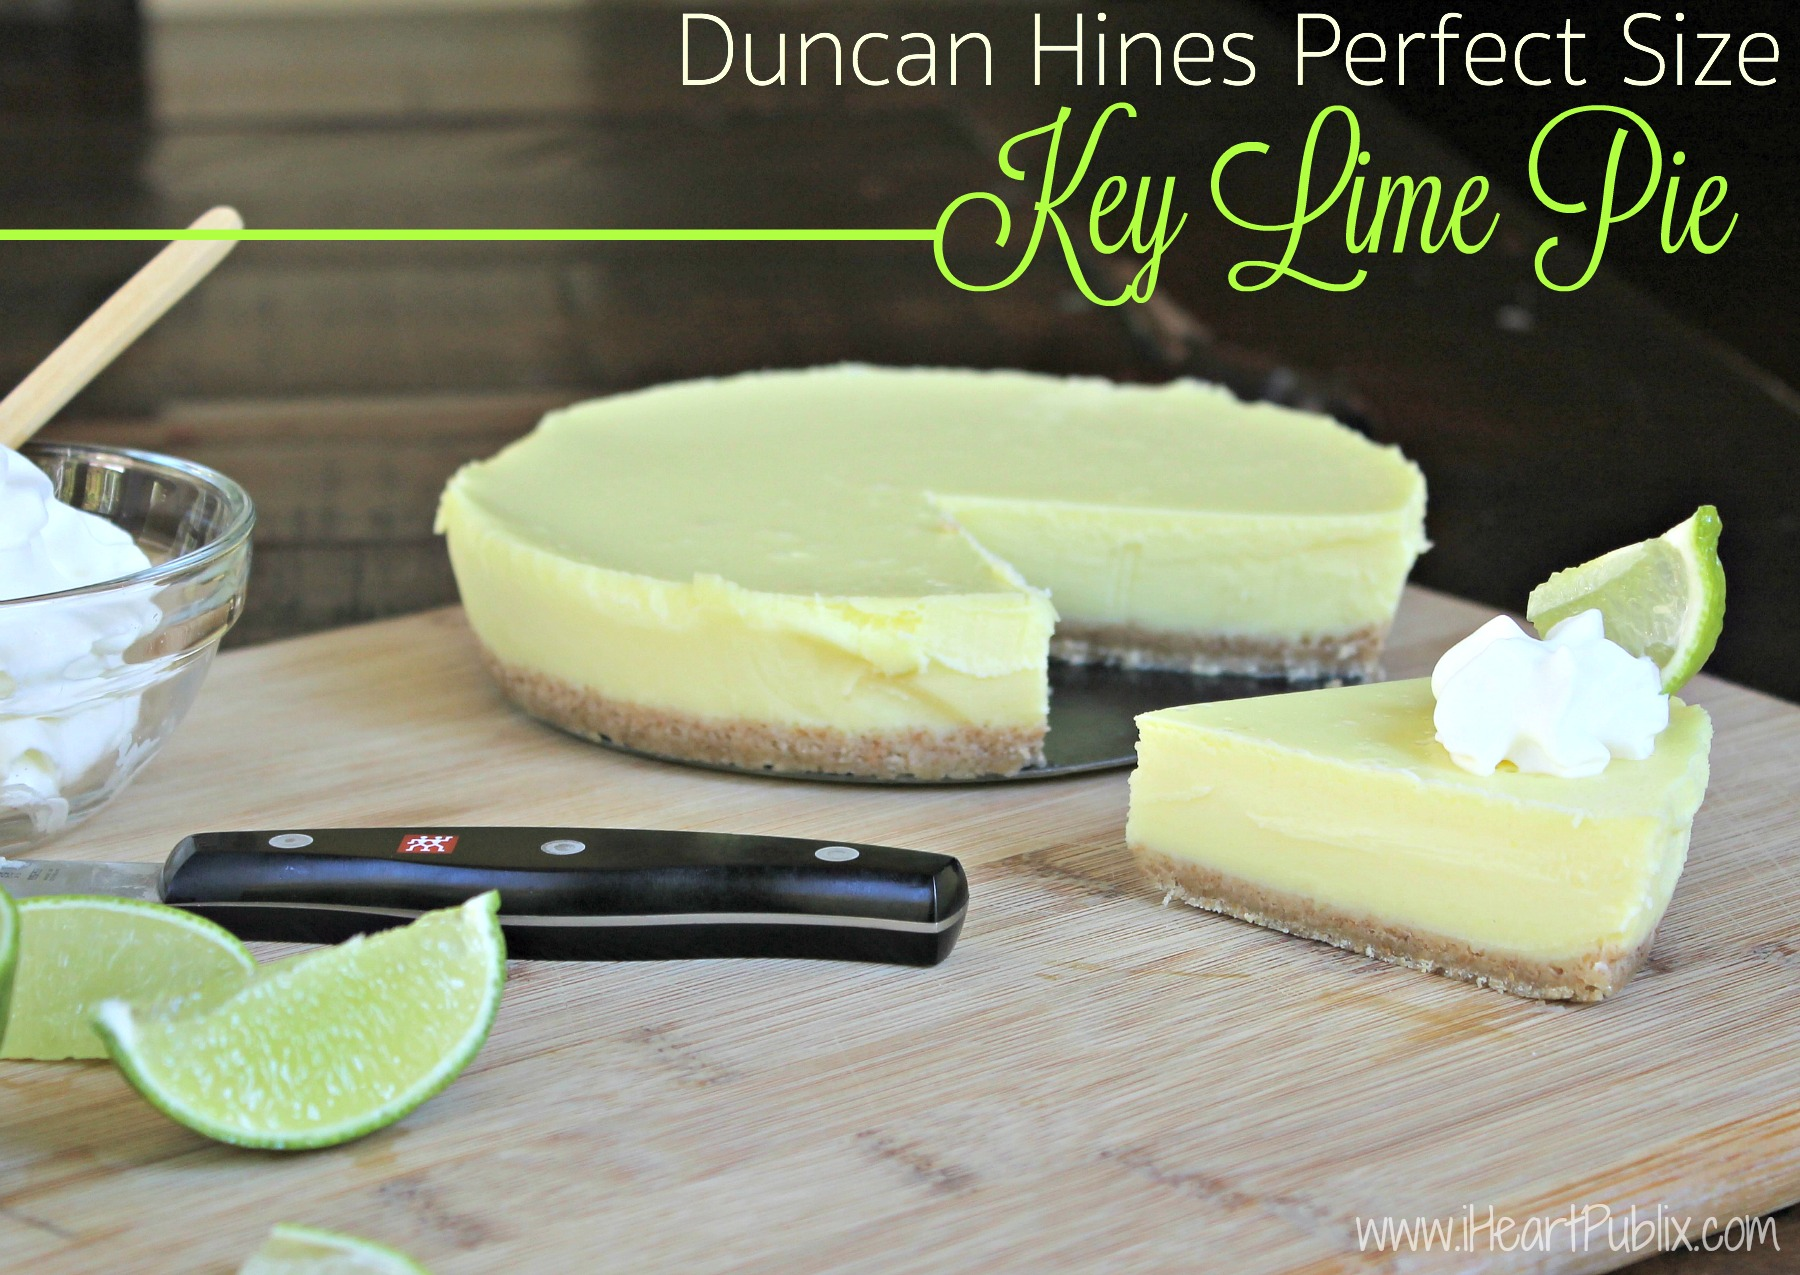 duncan-hines-perfect-size-key-lime-pie